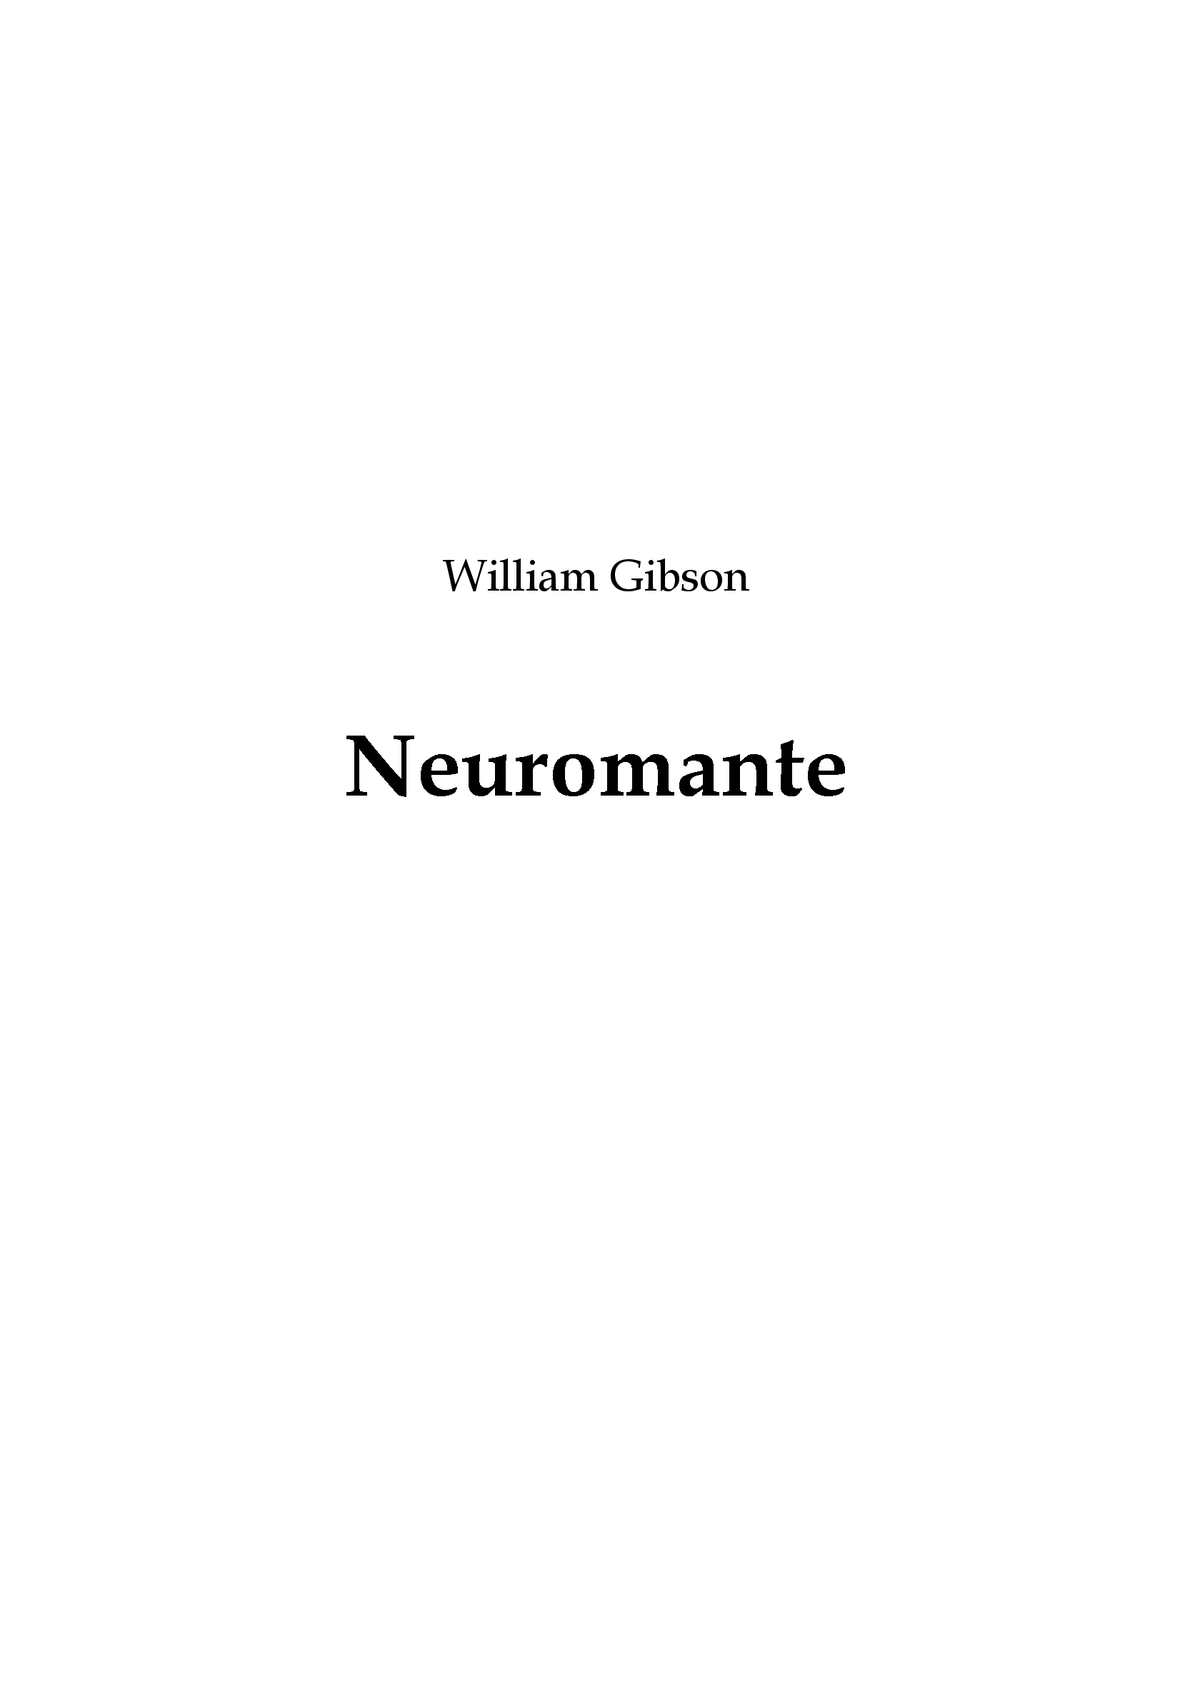 Calaméo - William Gibson  neuromante 3428e735421